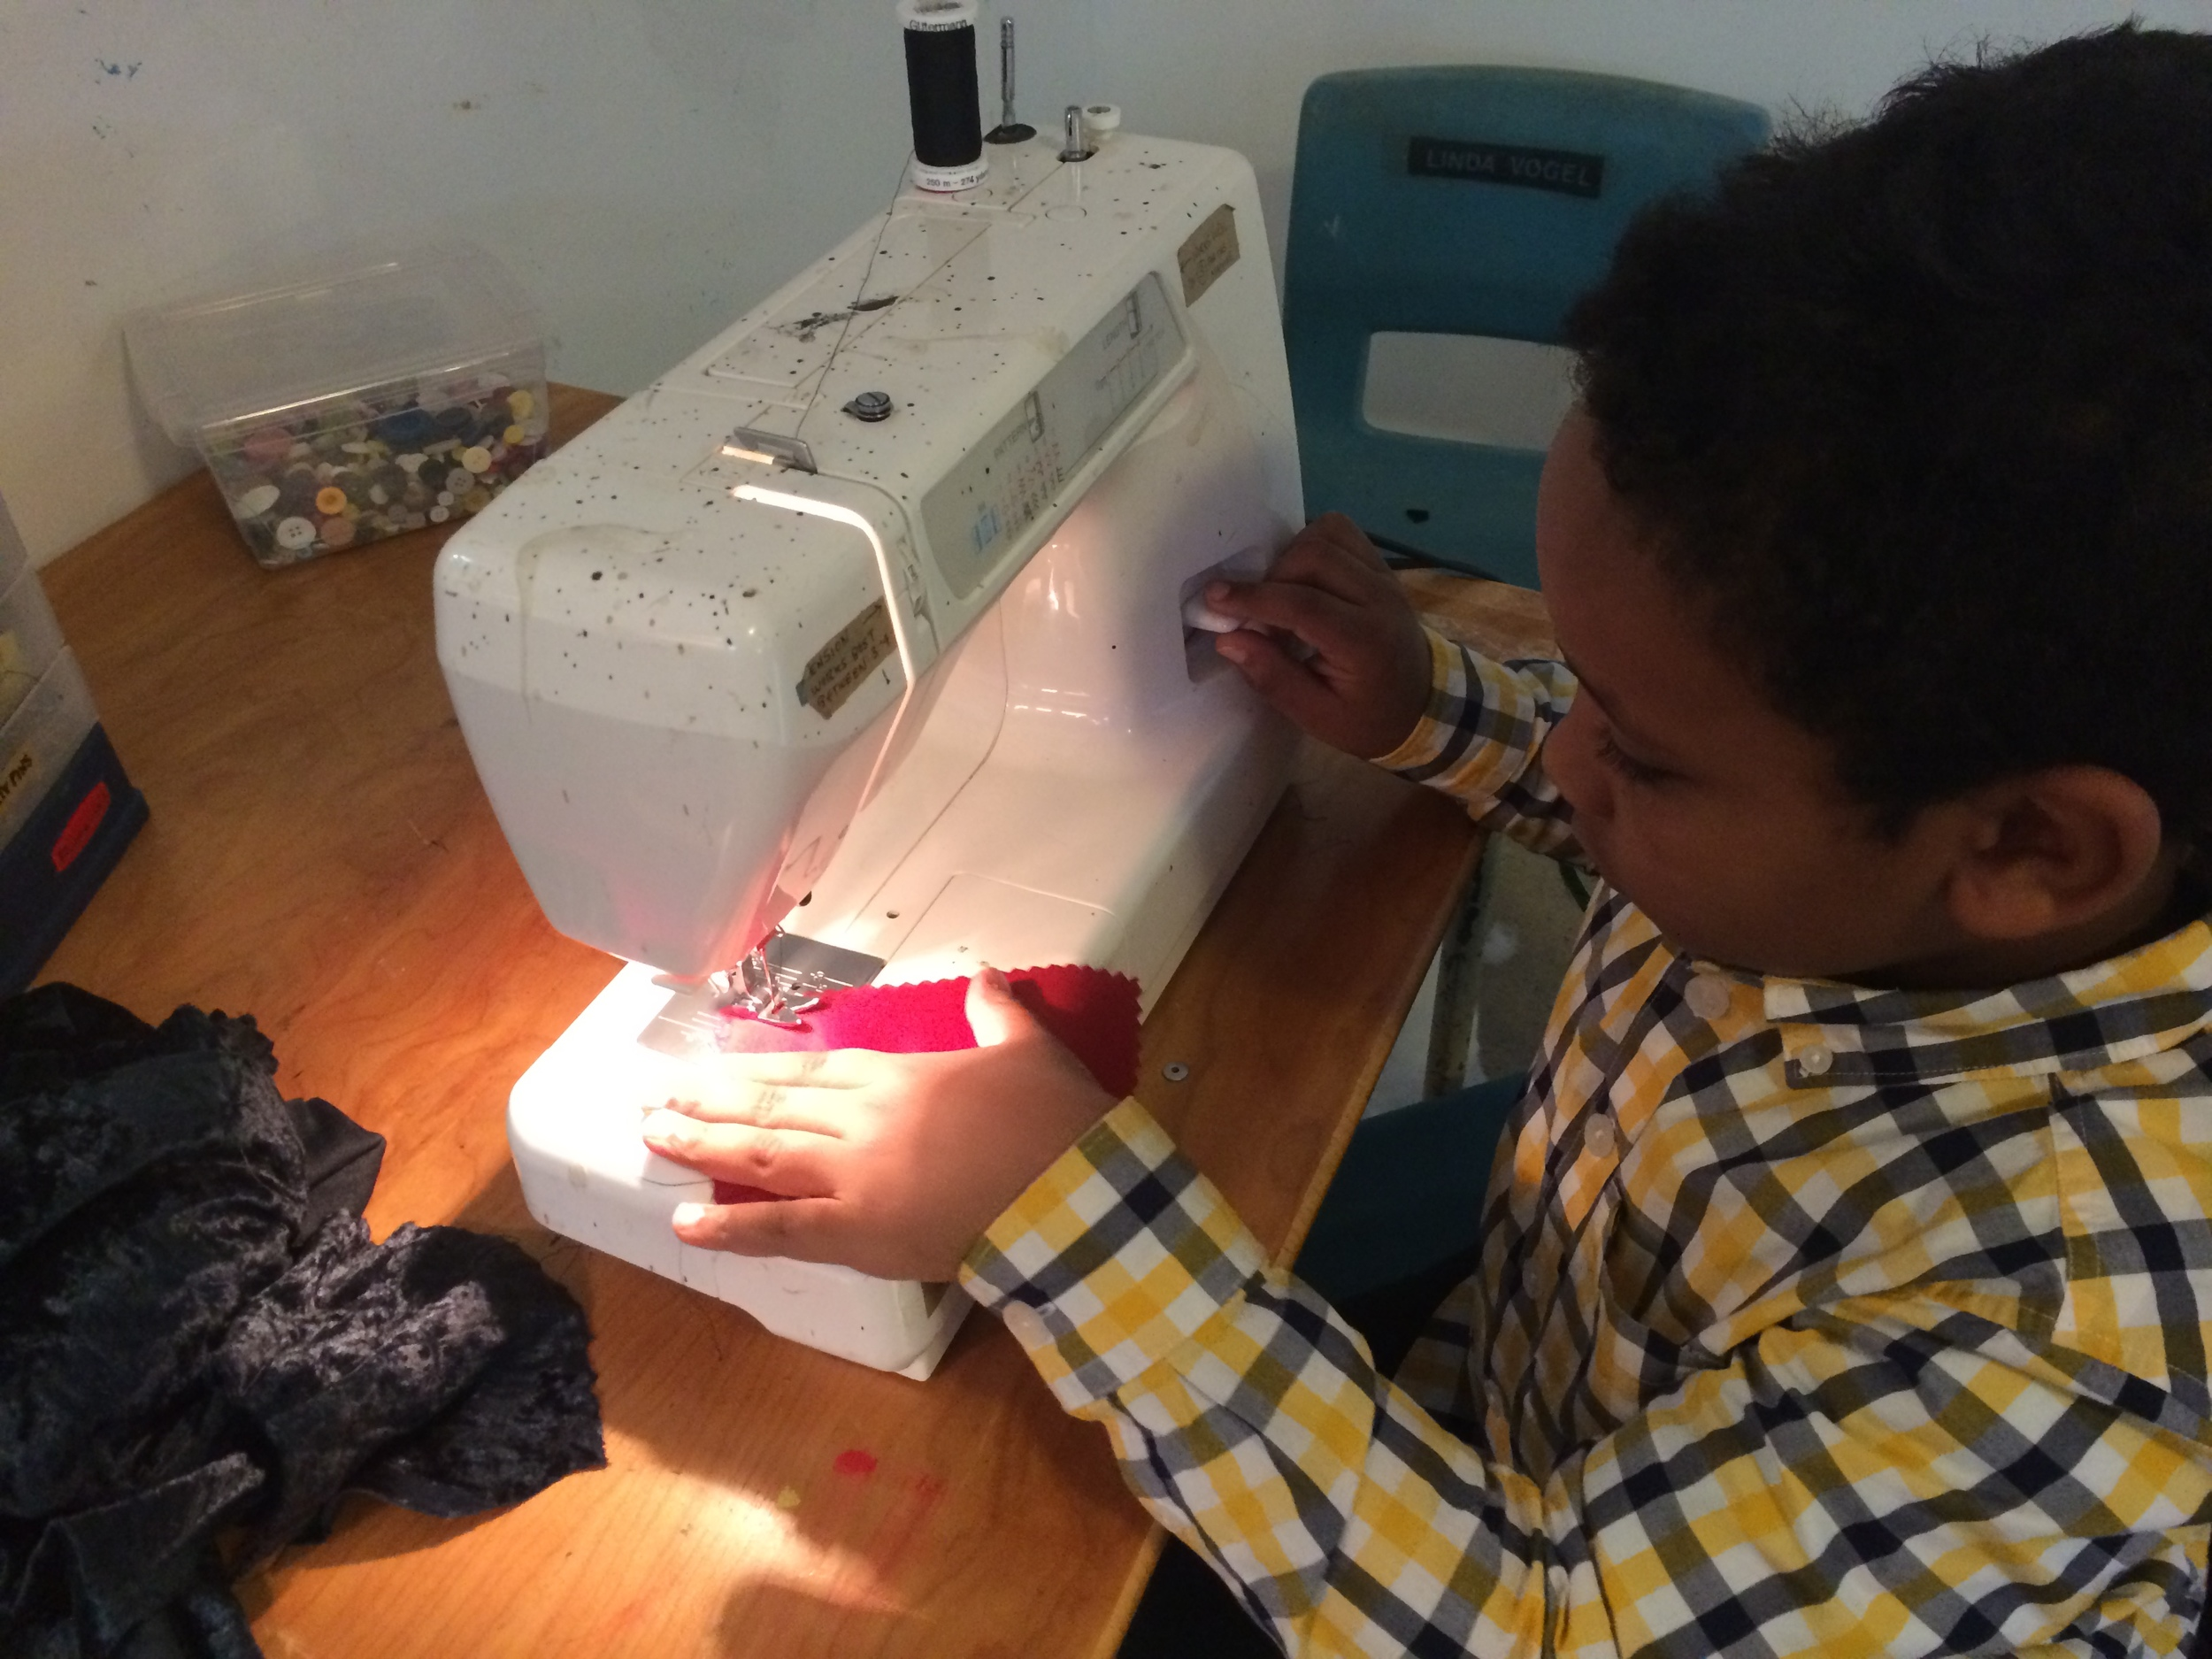 Introducing kids to the sewing machine is one of the highlights of working at the studio.